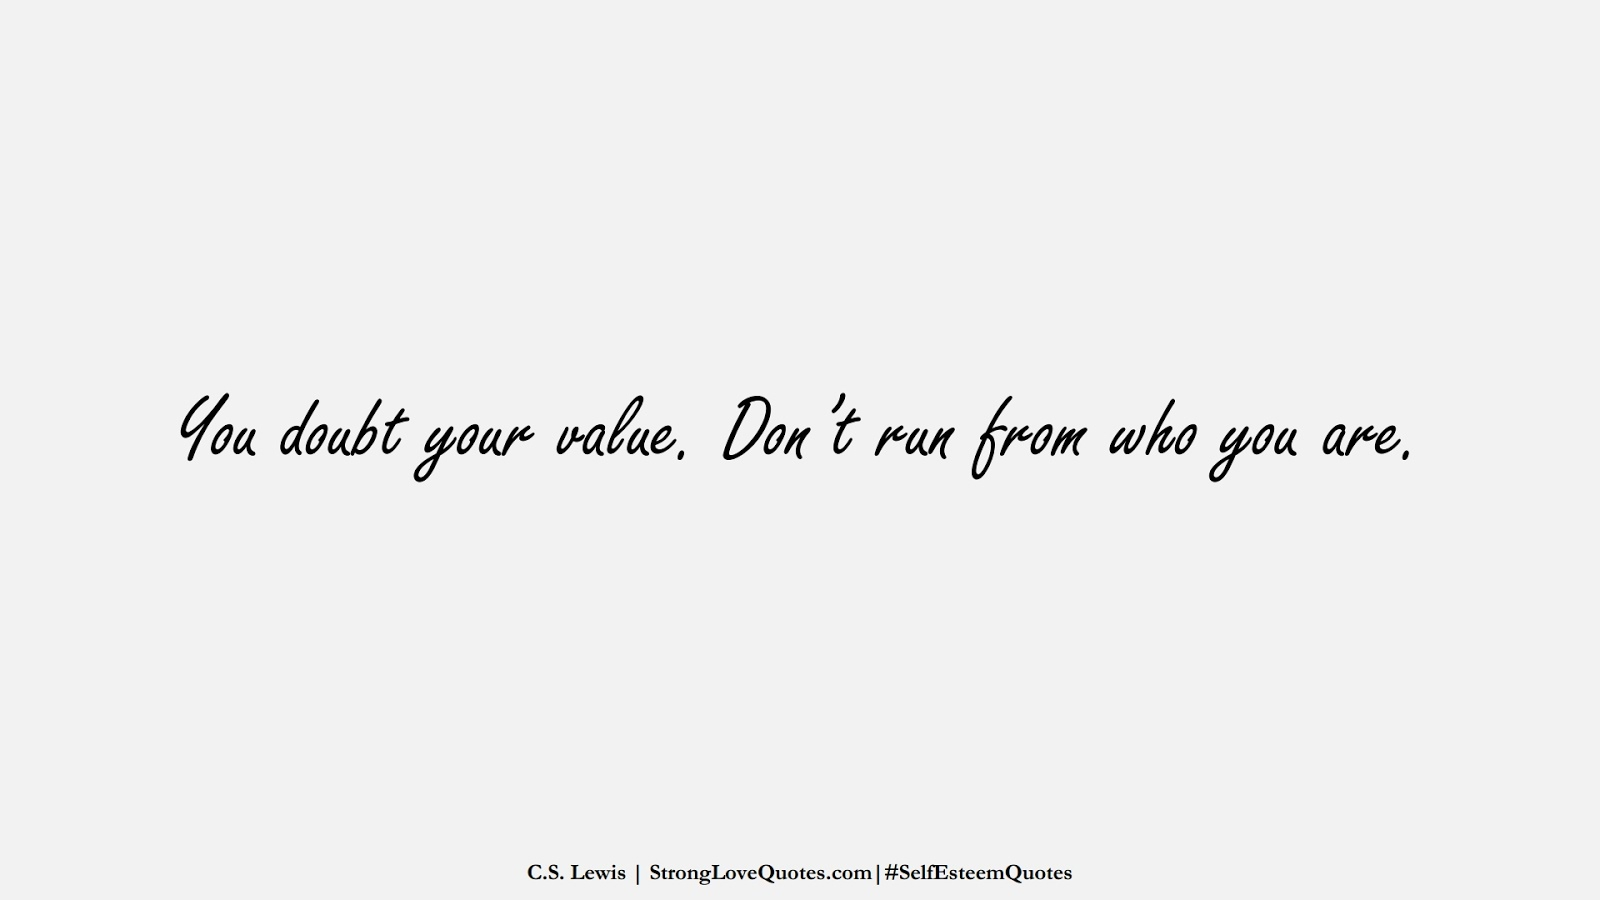 You doubt your value. Don't run from who you are. (C.S. Lewis);  #SelfEsteemQuotes